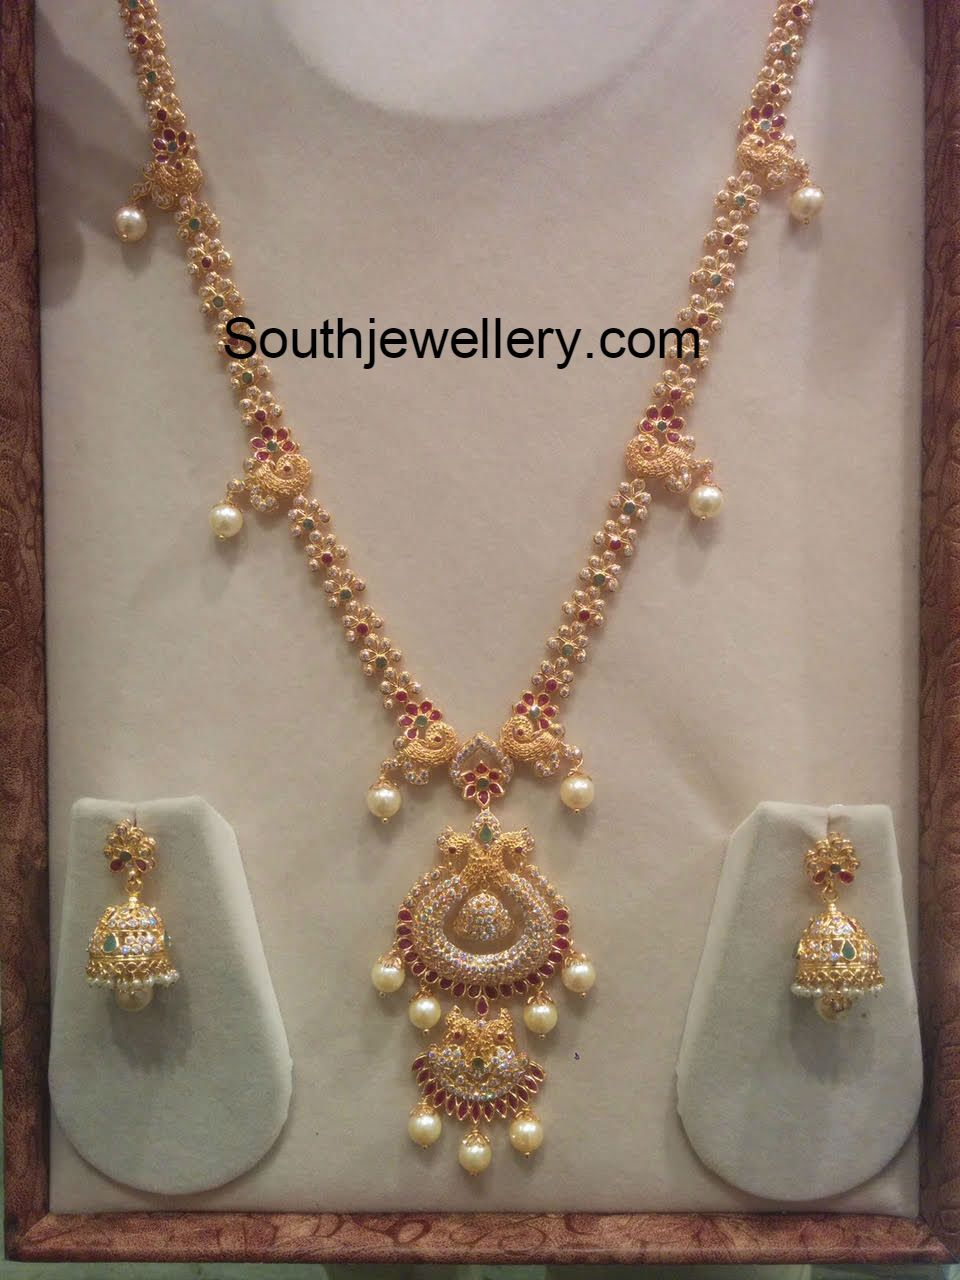 Pin by Keerthi on Jewellery | Pinterest | India jewelry, Jewel and ...